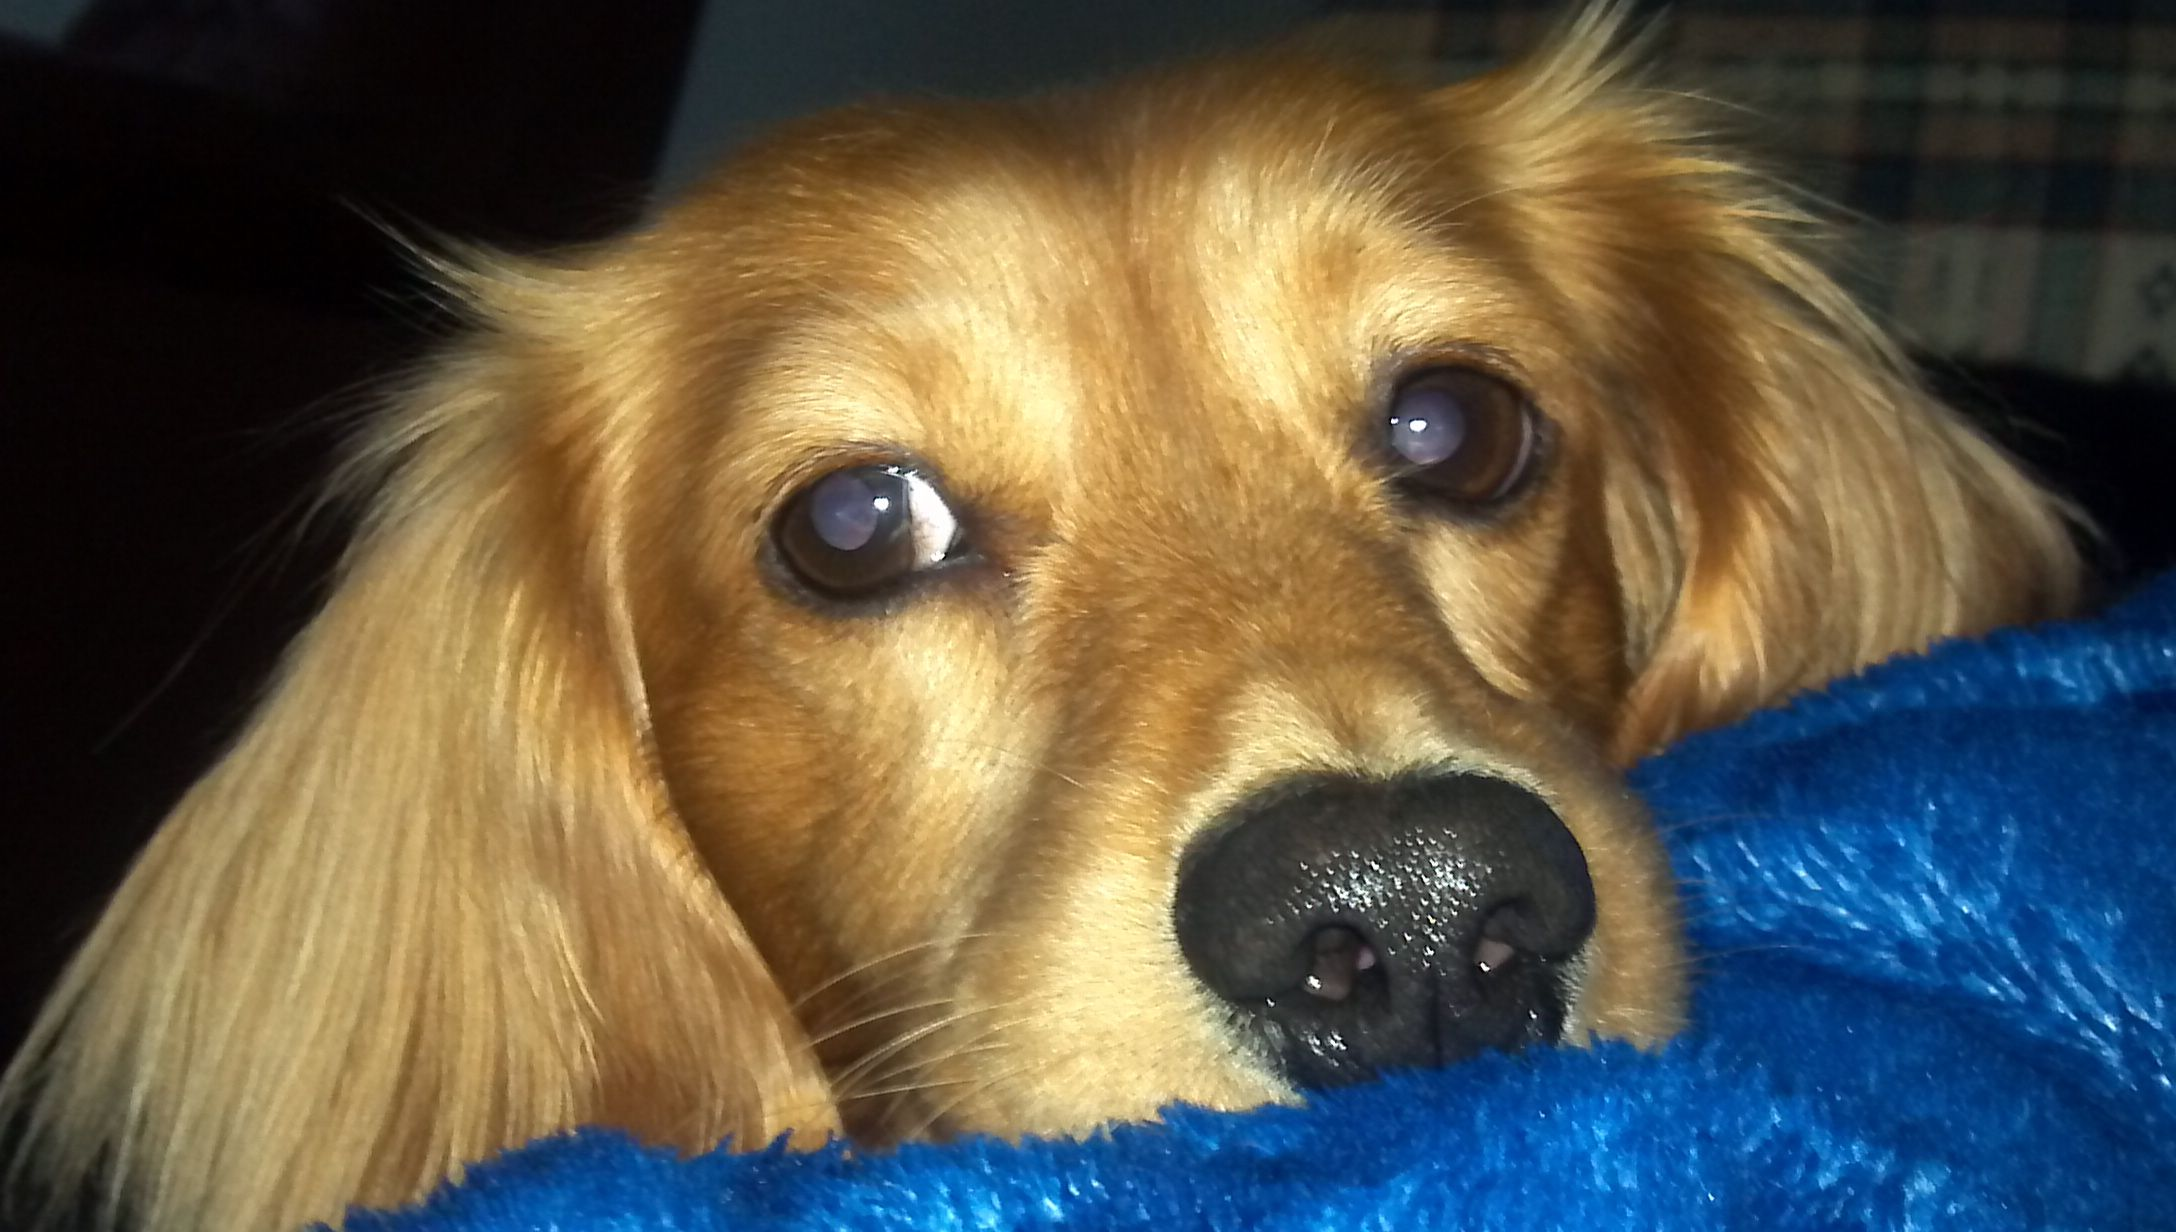 Look at those eyes long haired dachshund squishy huggable